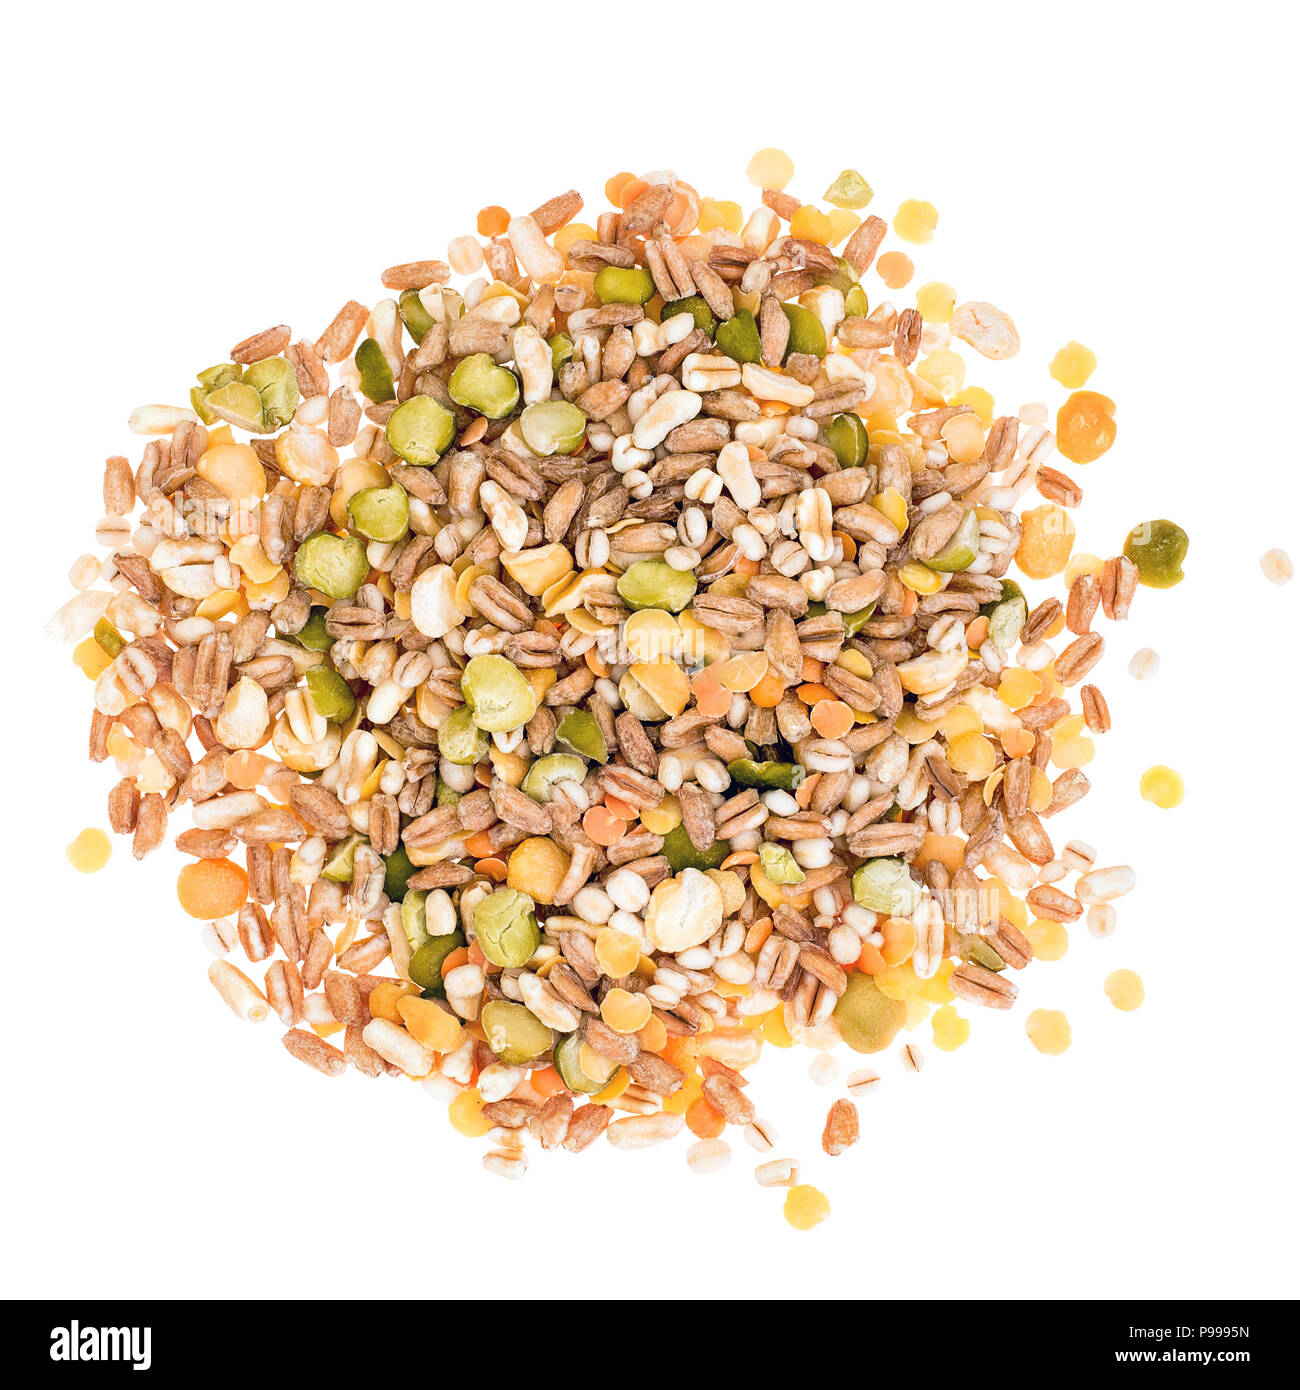 Assorted grains and pulses mix on white background, heap, top view. Winter food includes split peas, red and yellow lentils, pearl barley, kamut, spelt. - Stock Image